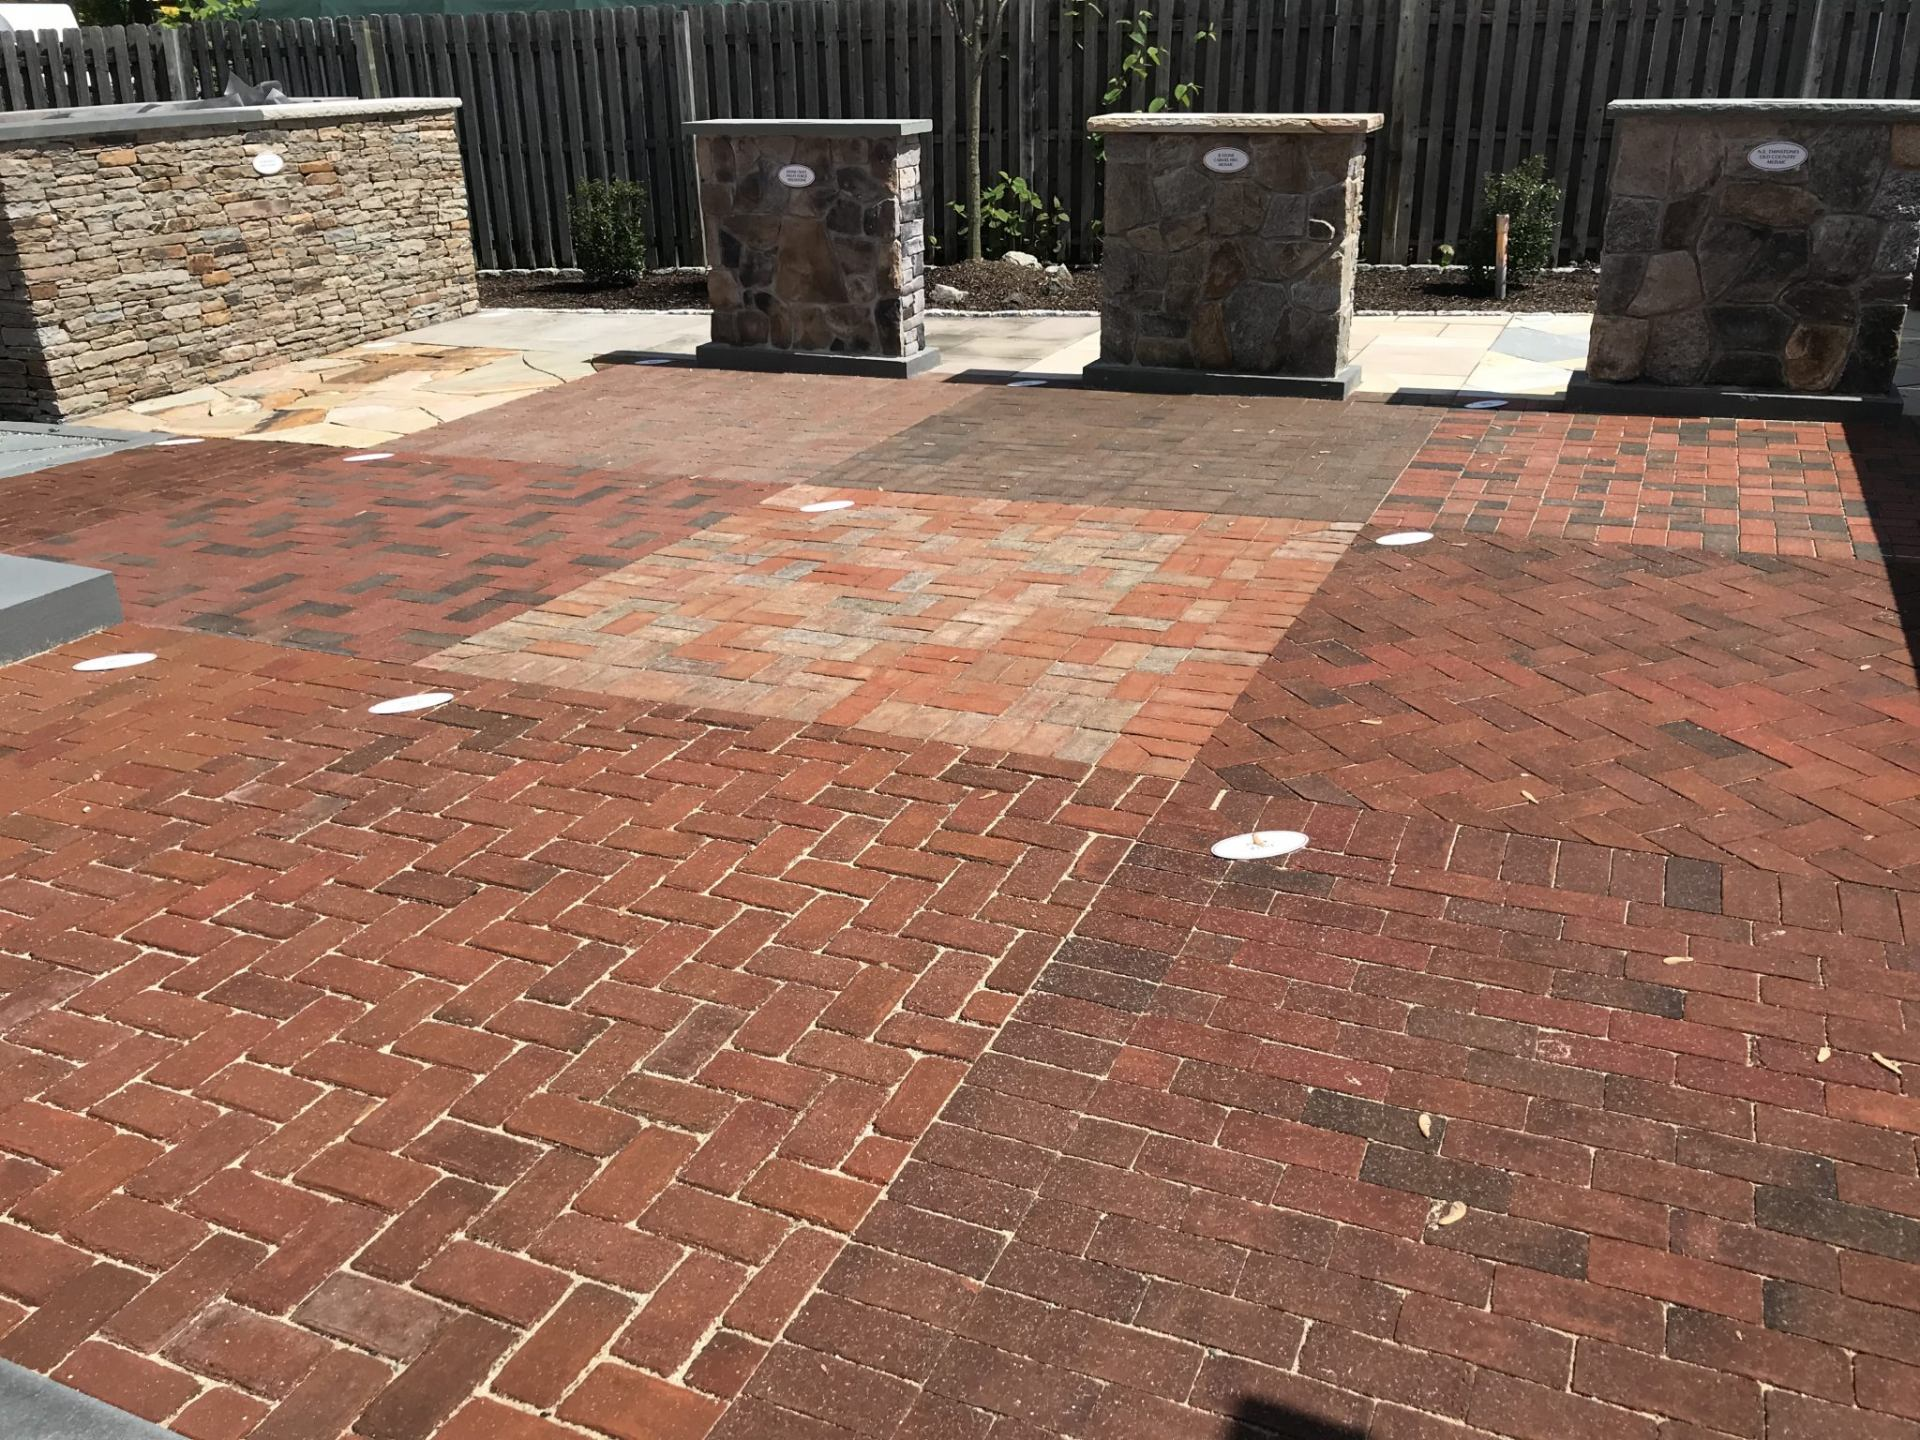 brick paver display area